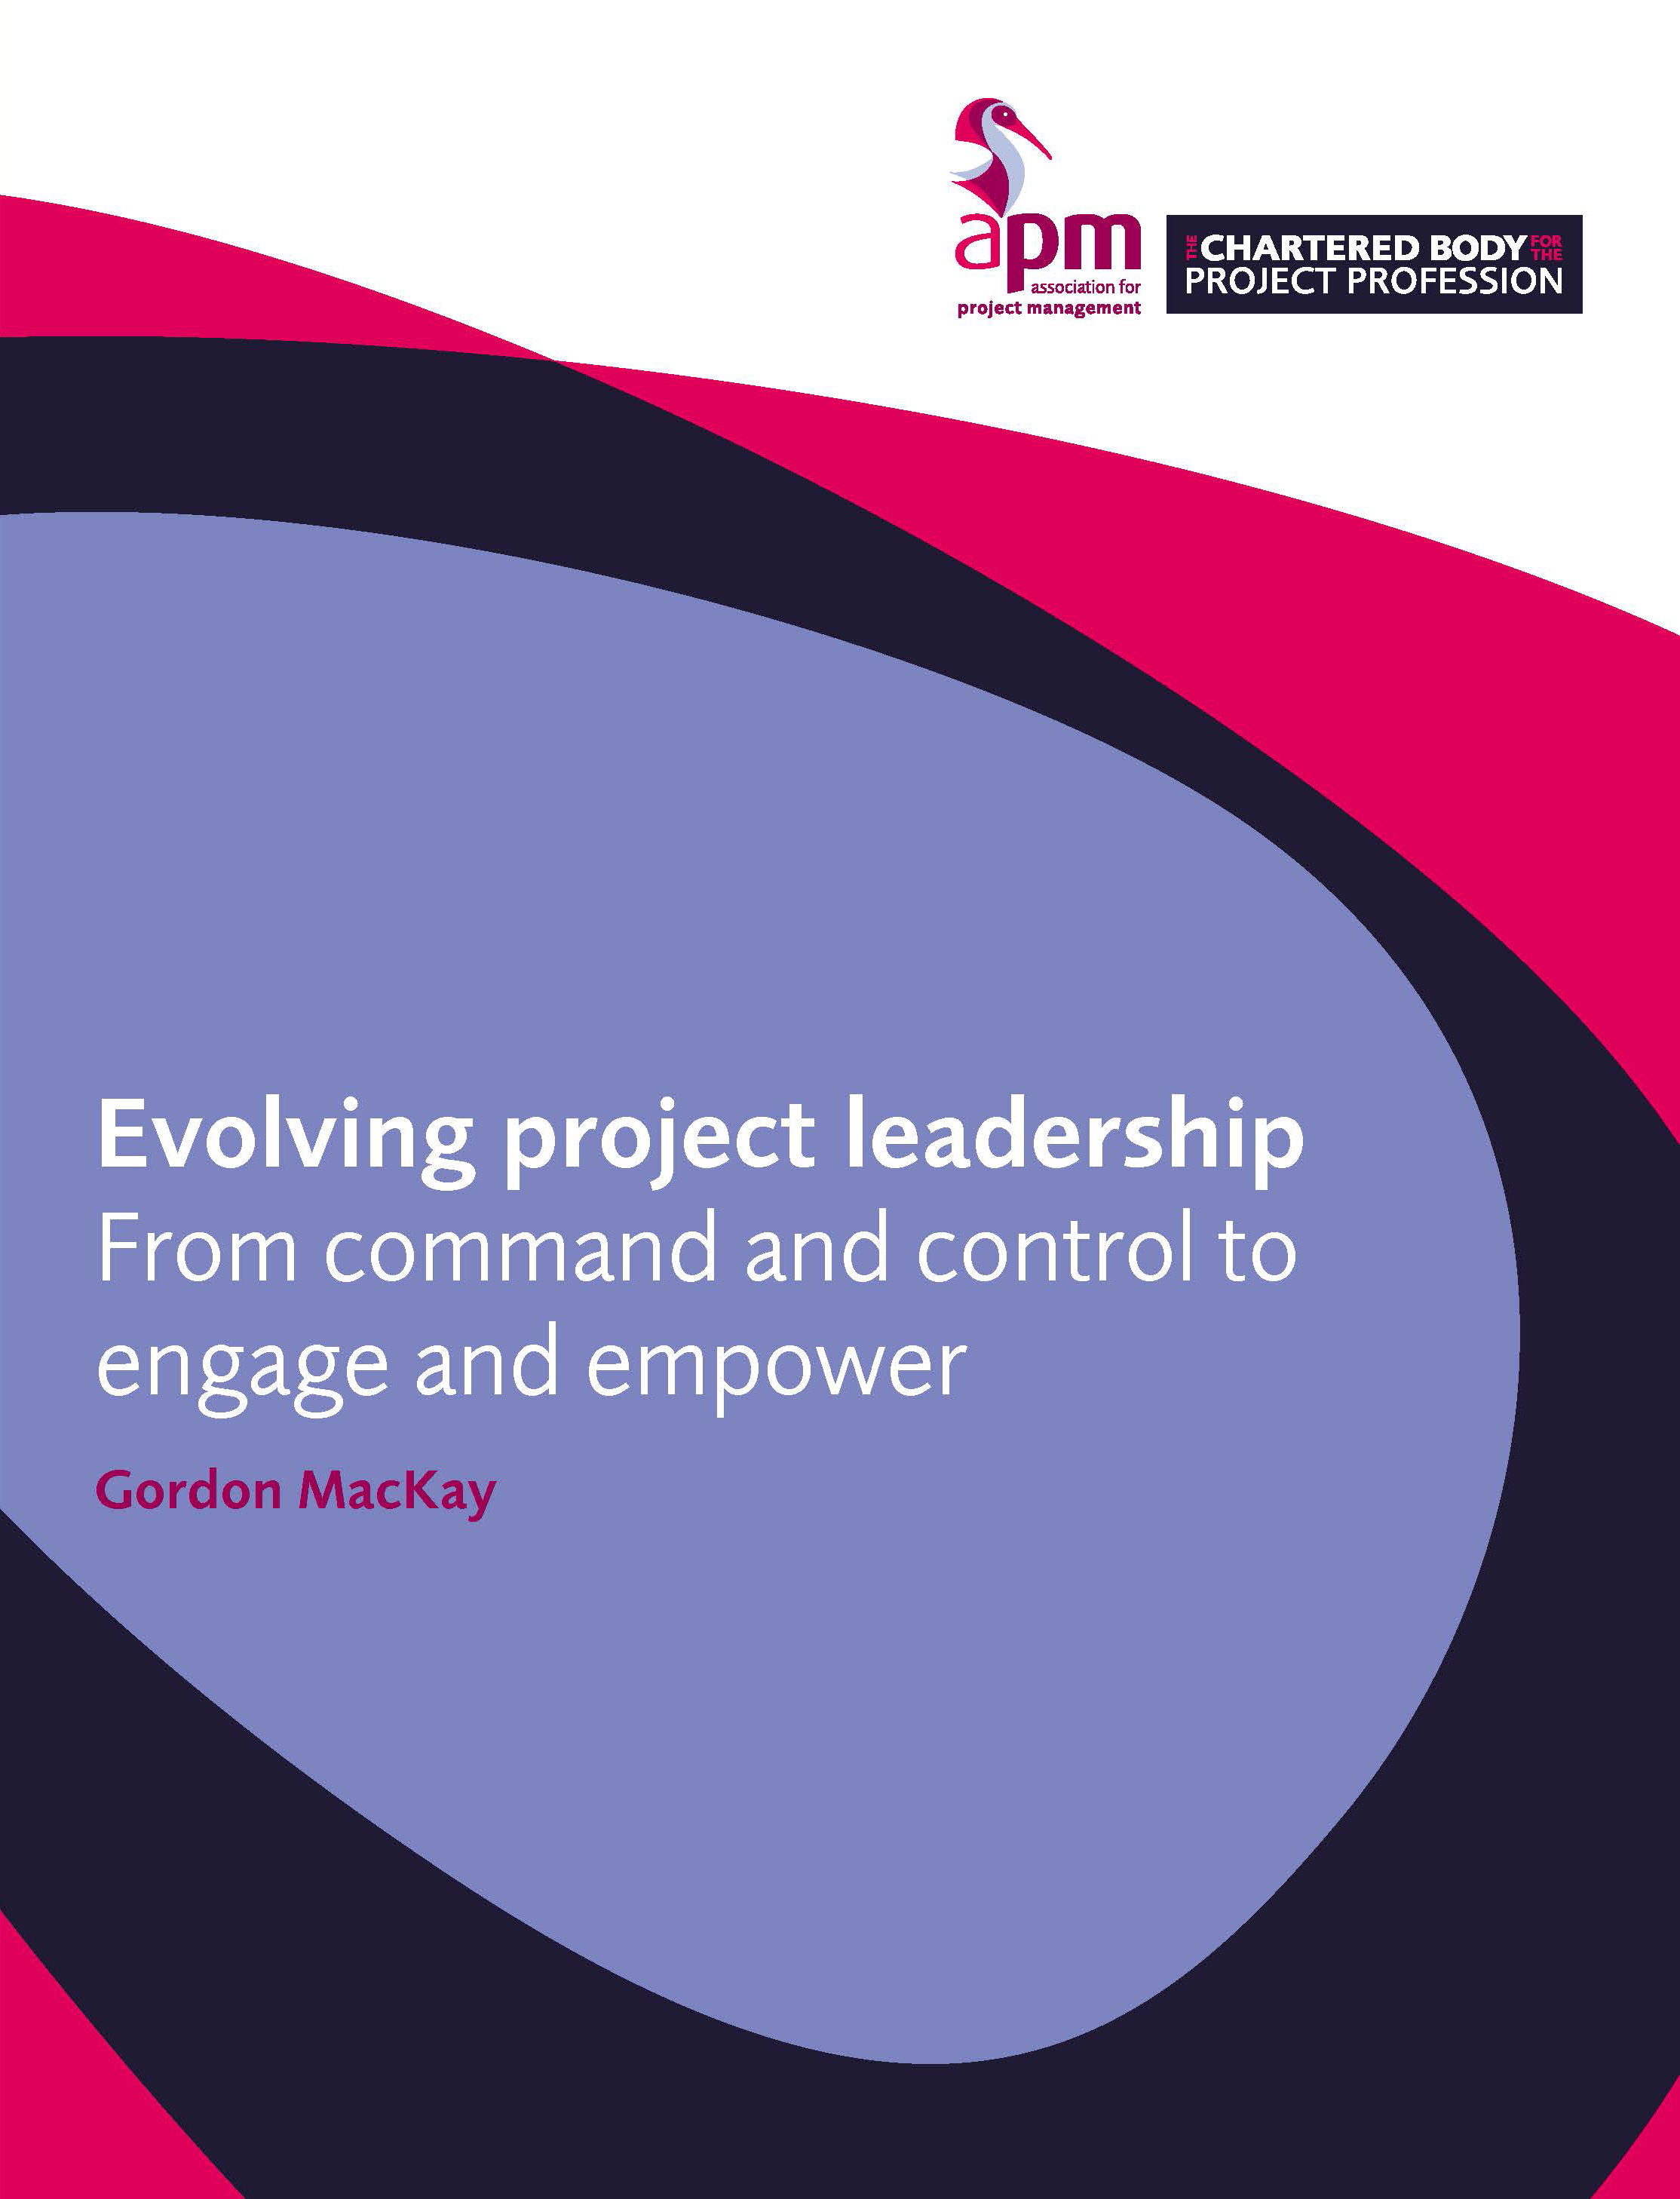 *NEW* Evolving project leadership - from command and control to engage and empower